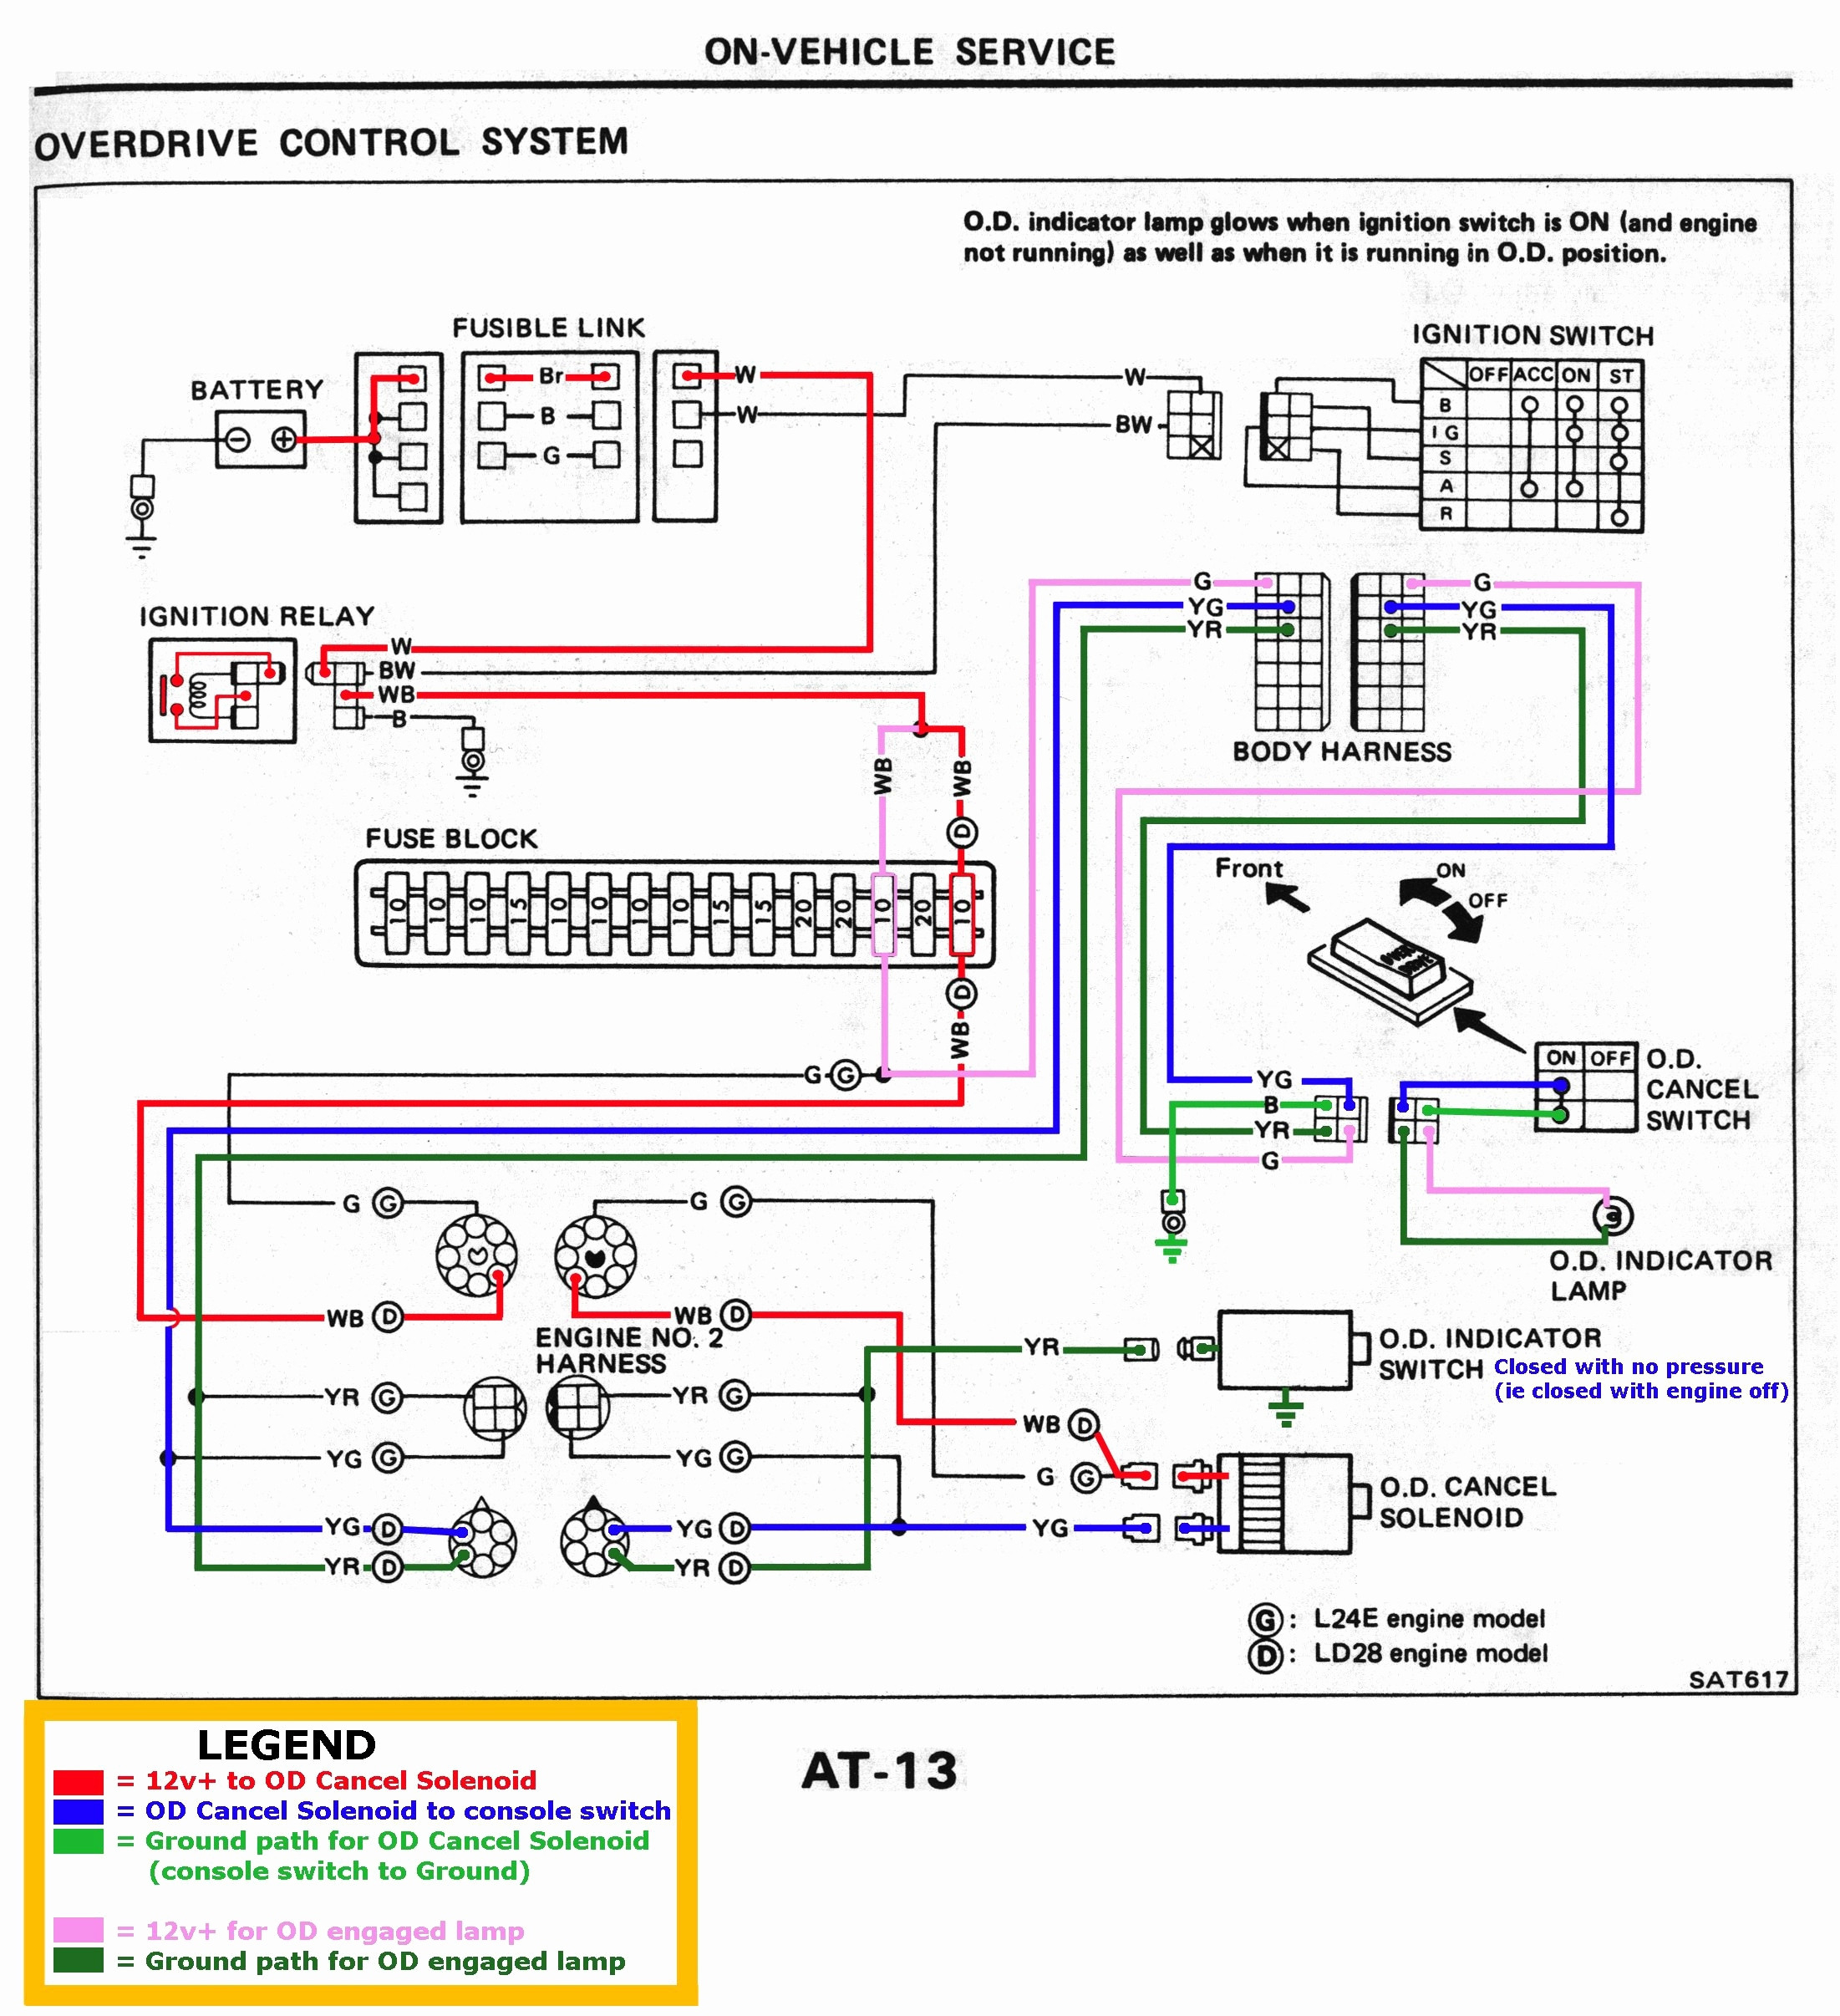 pressure switch wiring diagram Collection-Square D Air pressor Pressure Switch Wiring Diagram New Wiring Diagram Square D Pressure Switch Wiring Diagram New 11-g